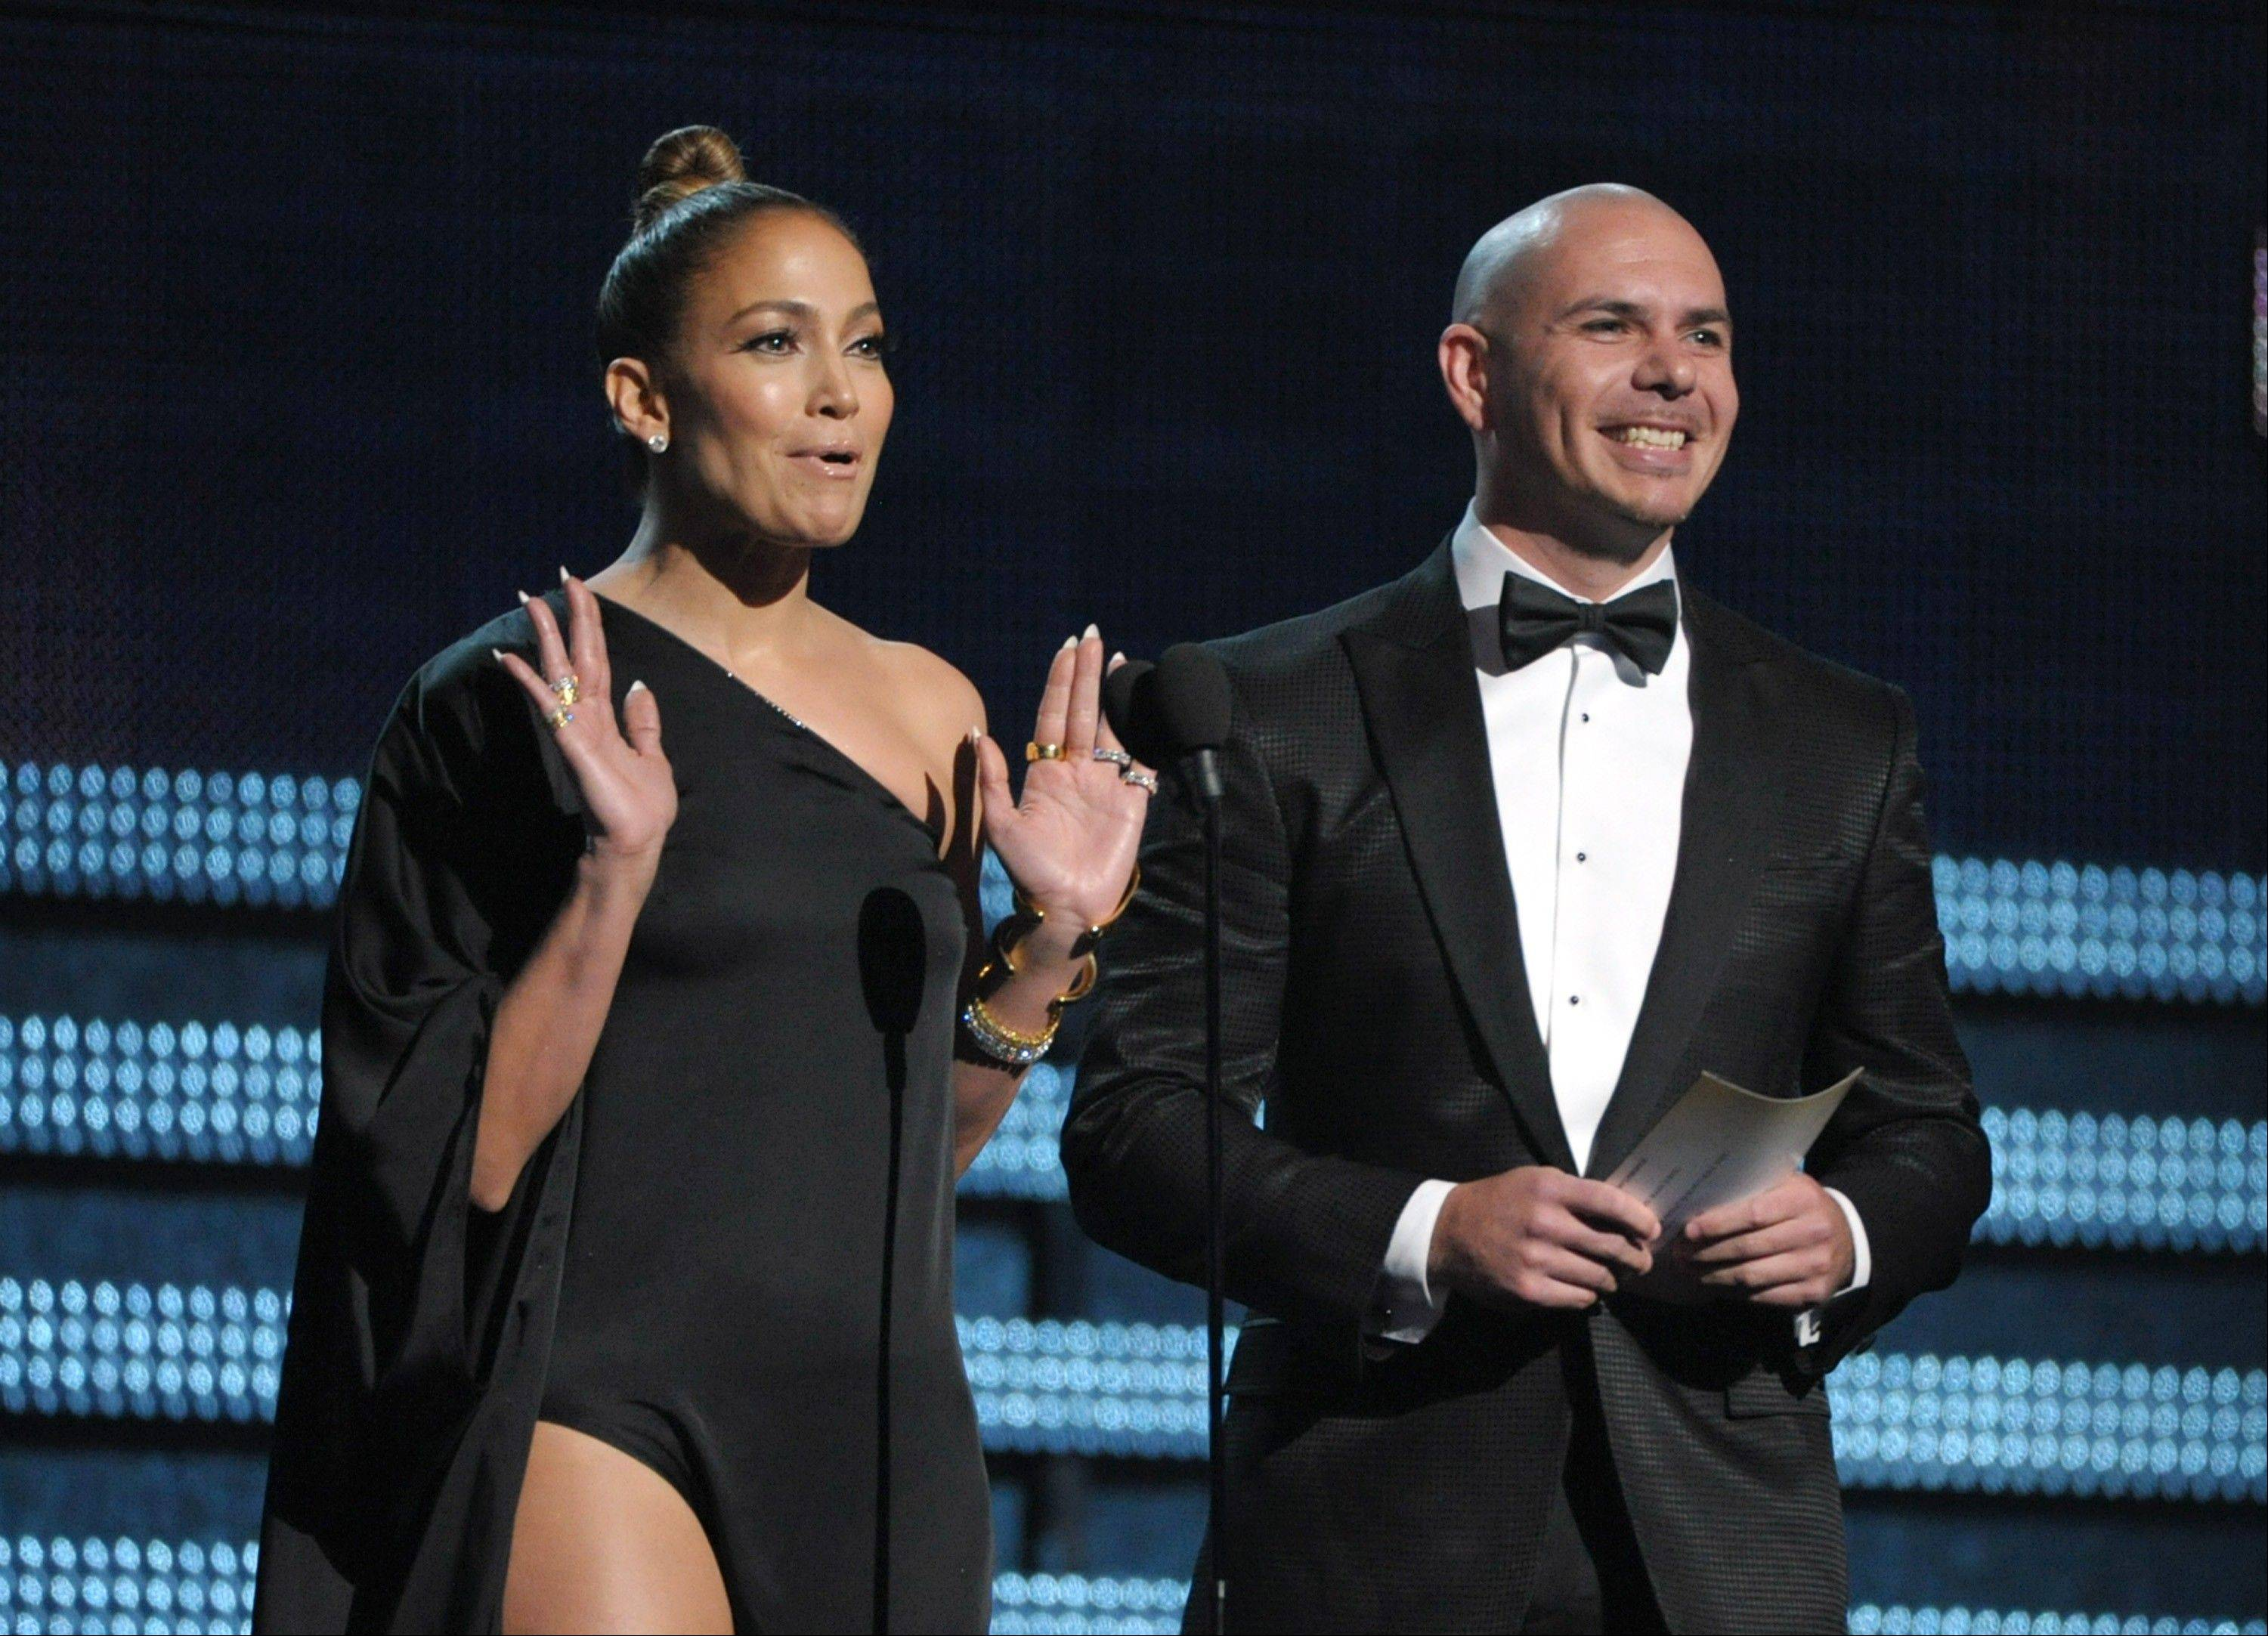 Jennifer Lopez and Pitbull present the award for best pop solo performance at the 55th annual Grammy Awards on Sunday, Feb. 10, 2013, in Los Angeles.